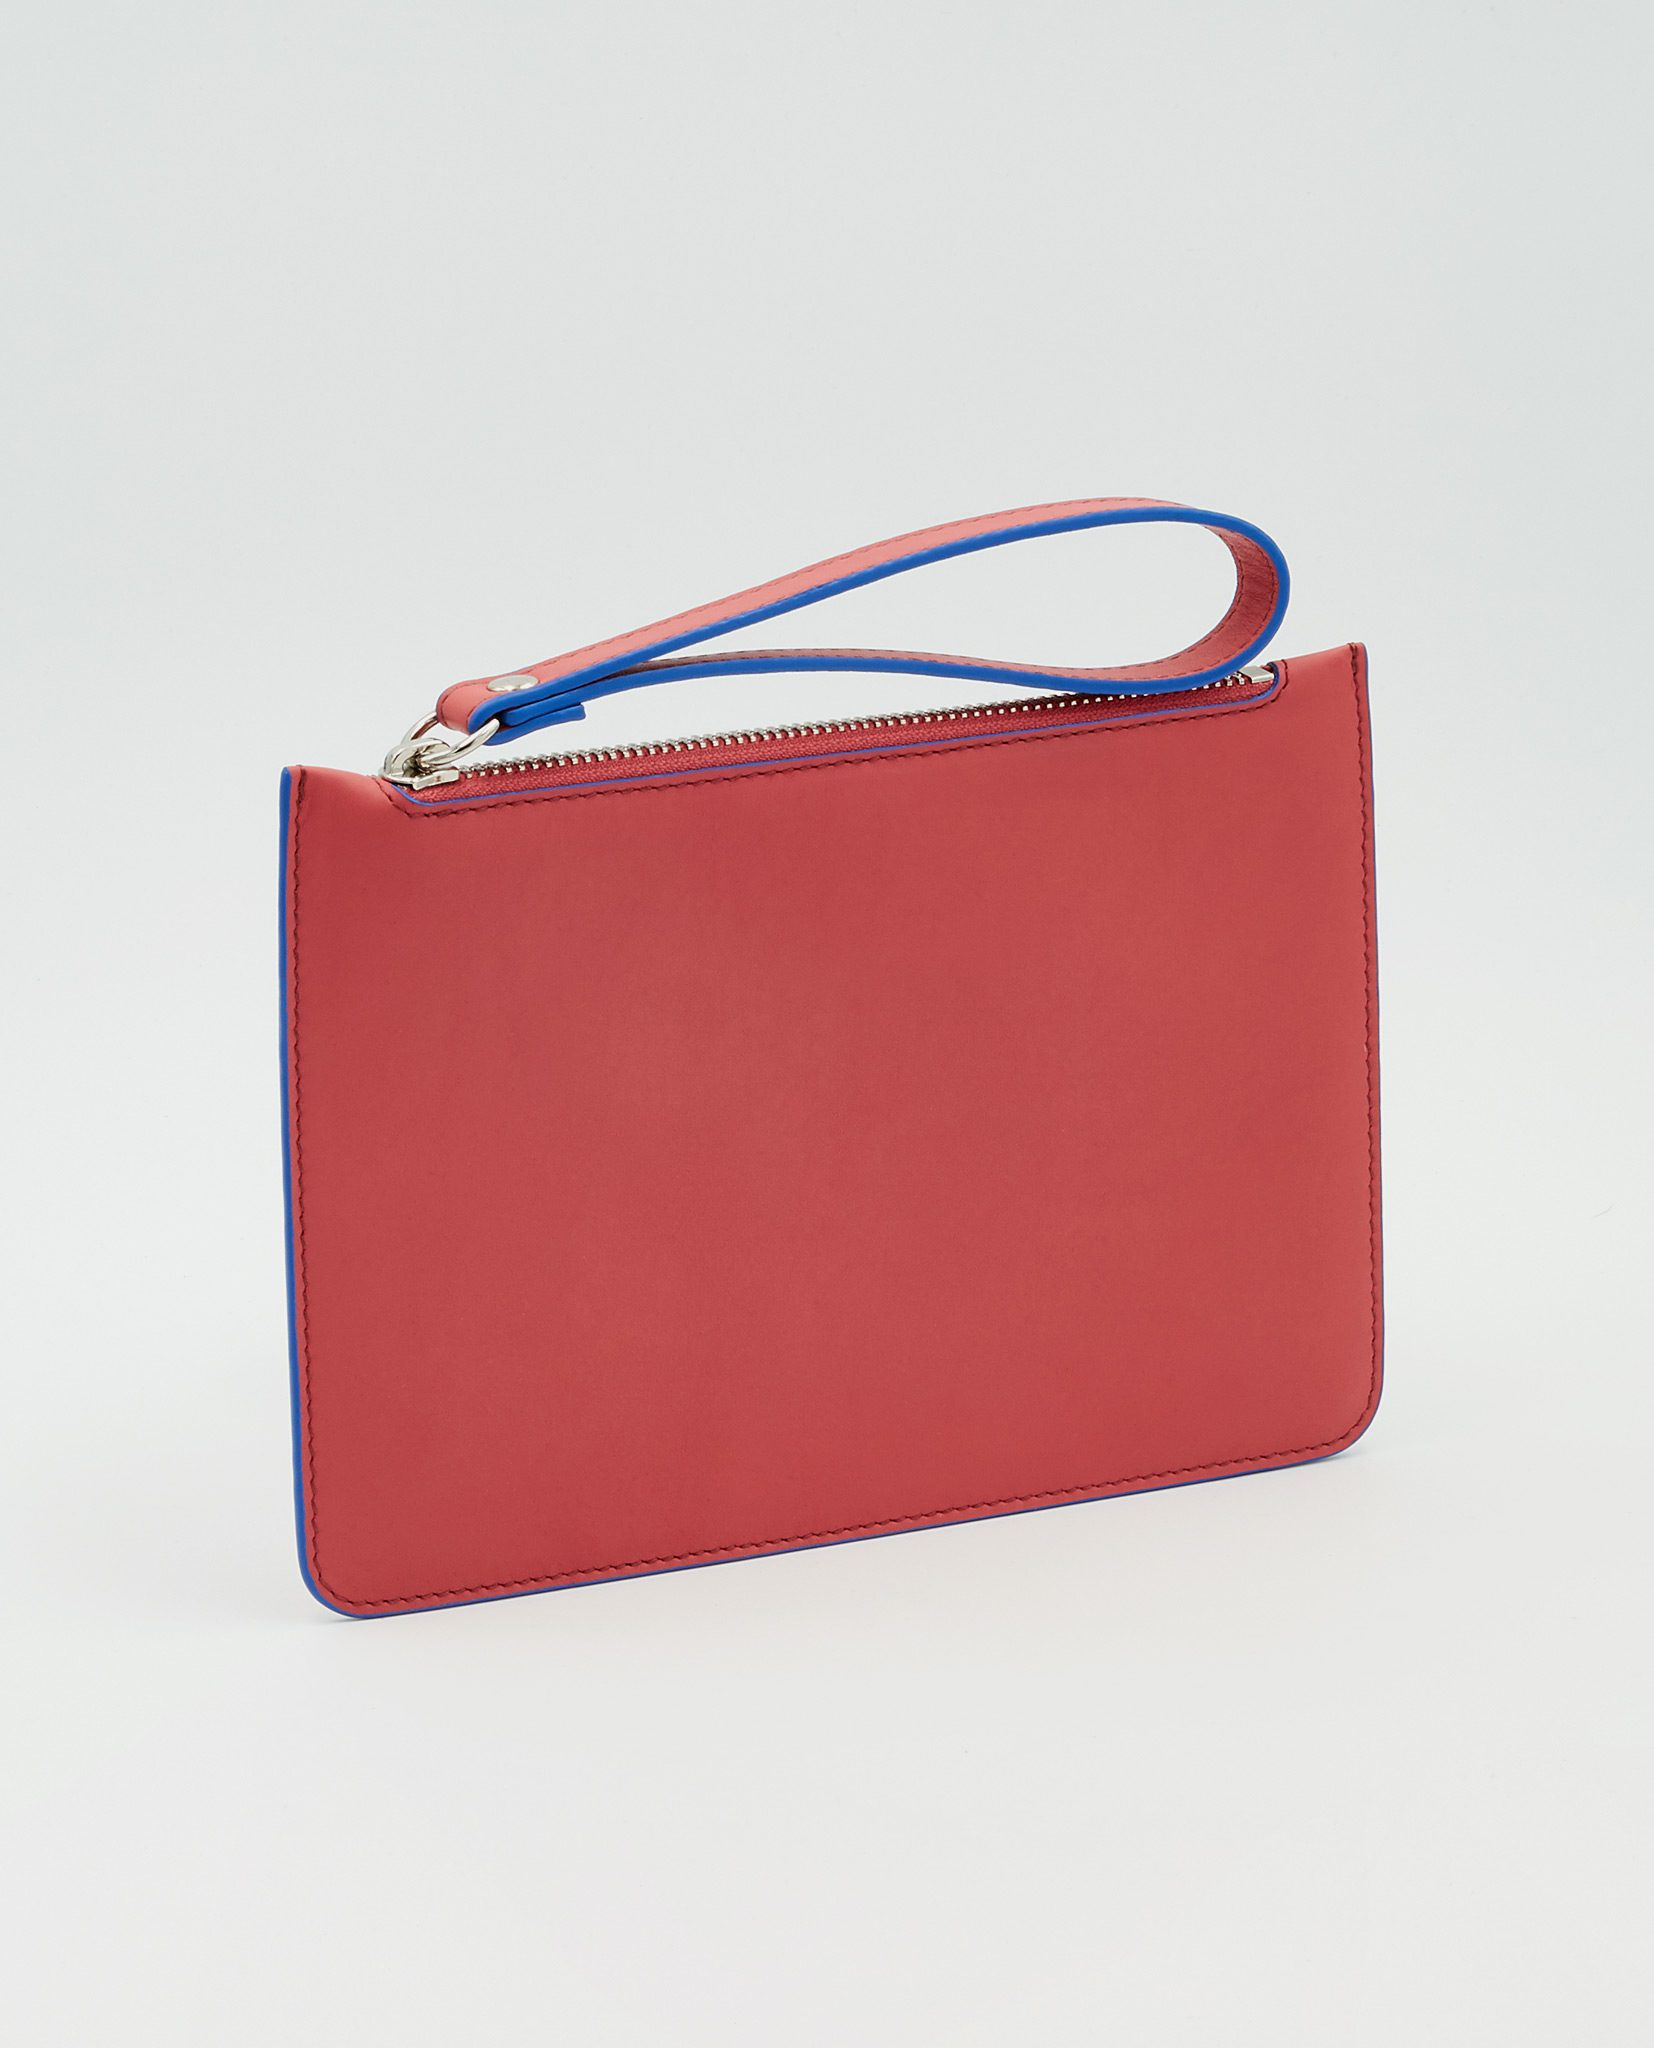 Soofre_Small-Pouch_Coral_1